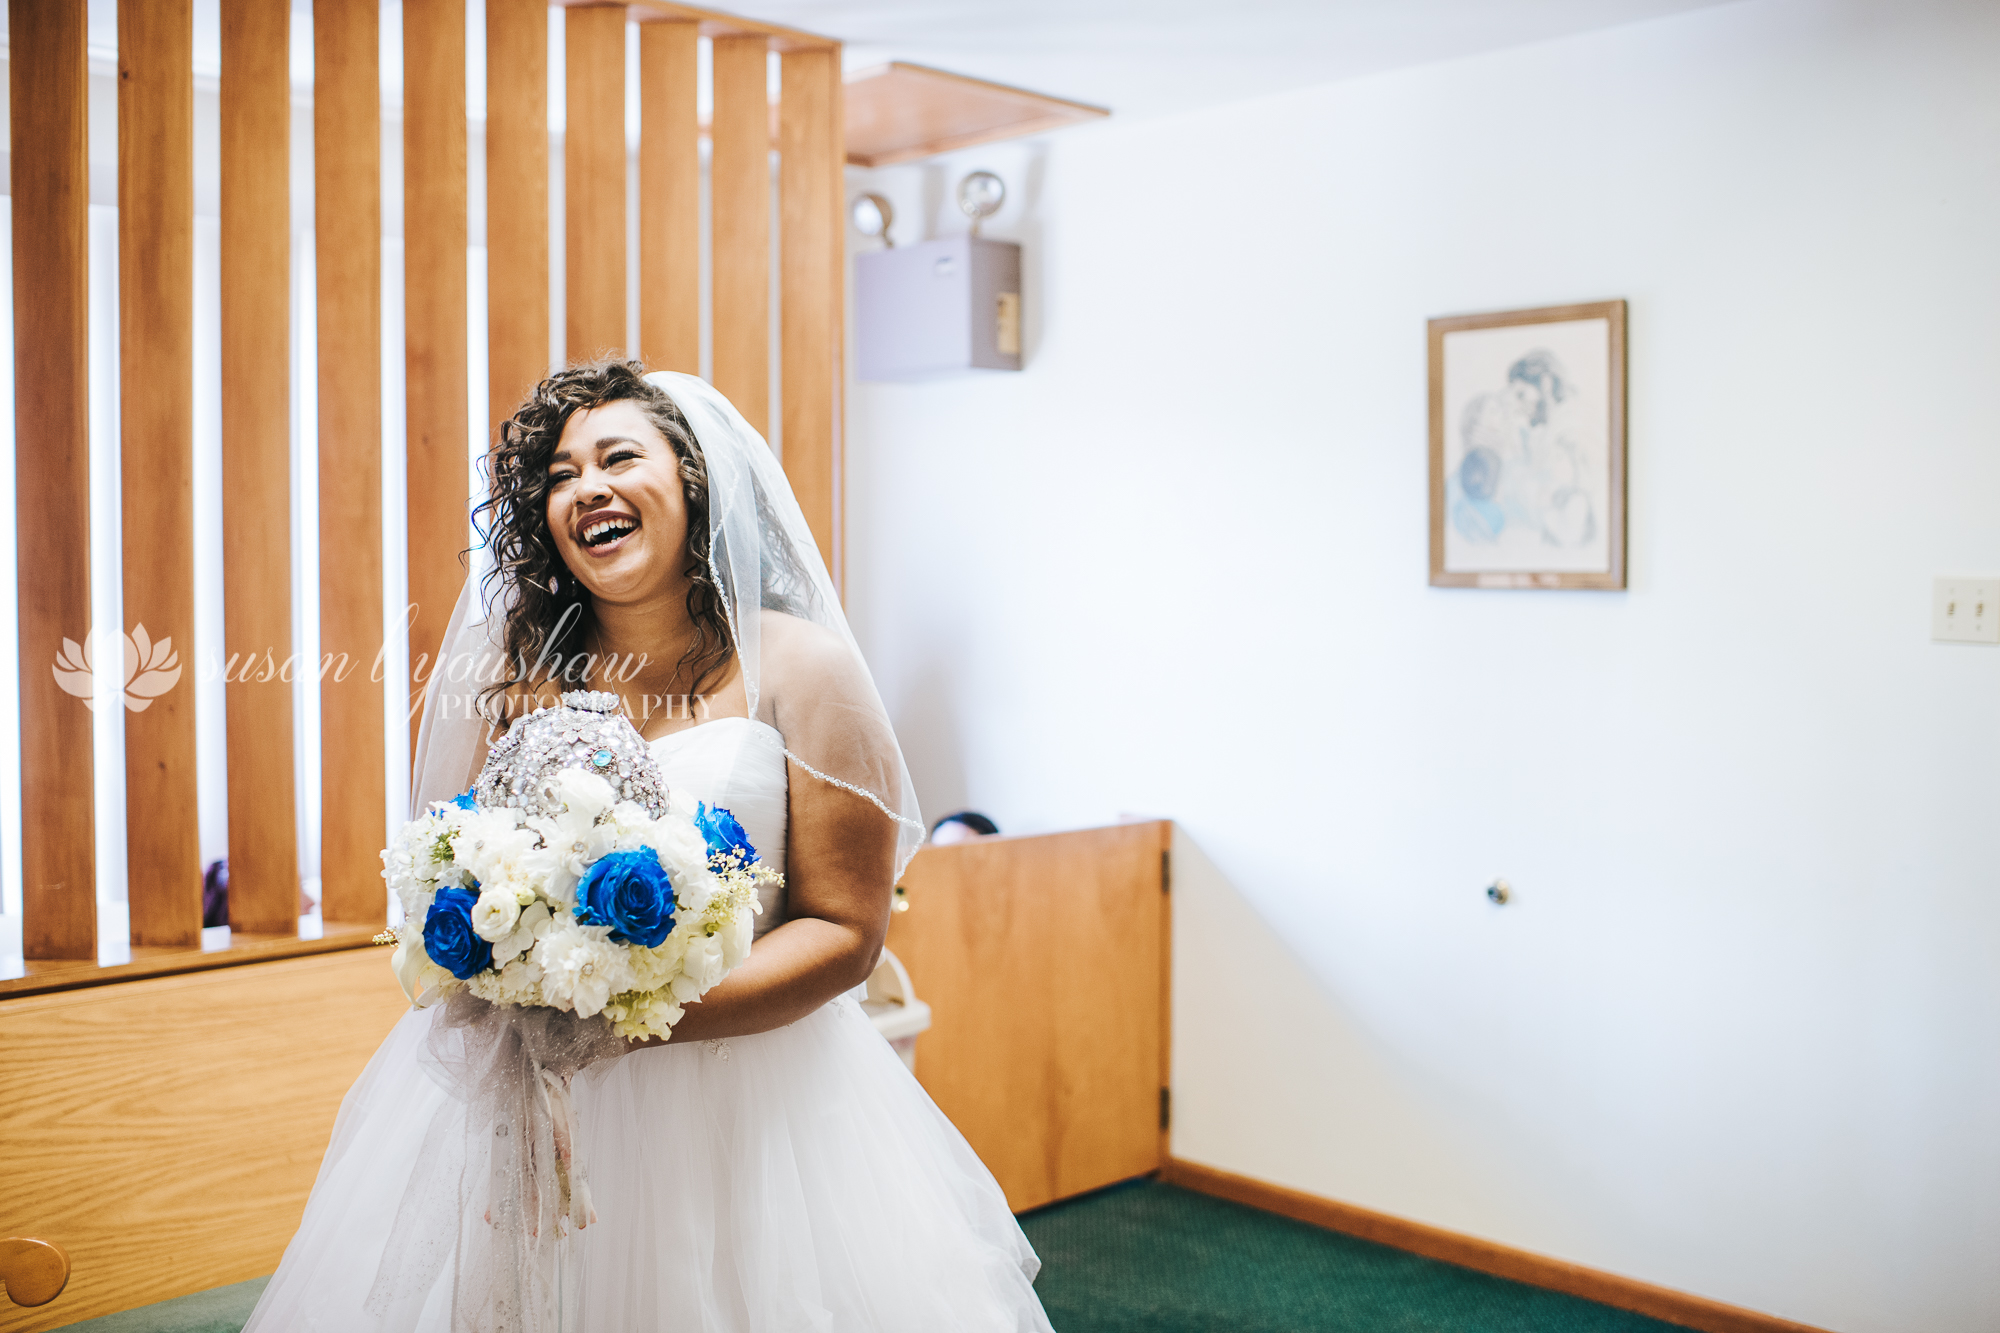 Katelyn and Wes Wedding Photos 07-13-2019 SLY Photography-30.jpg